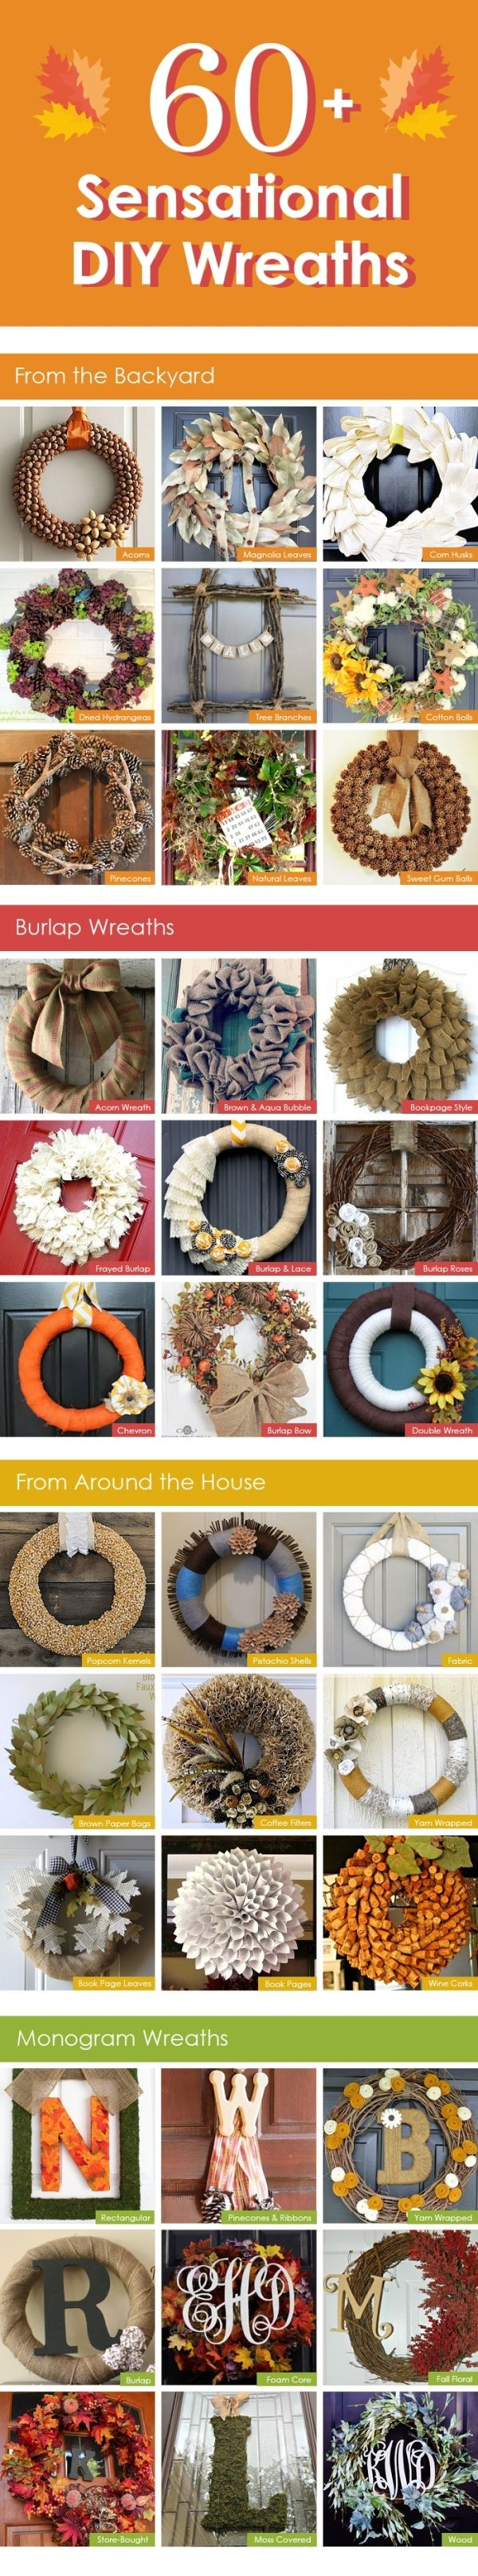 60+ Sensational DIY Wreaths For the Fall — Wreaths from things in the backyard, around the home, burlap wreaths, and monogram wreaths! by la...